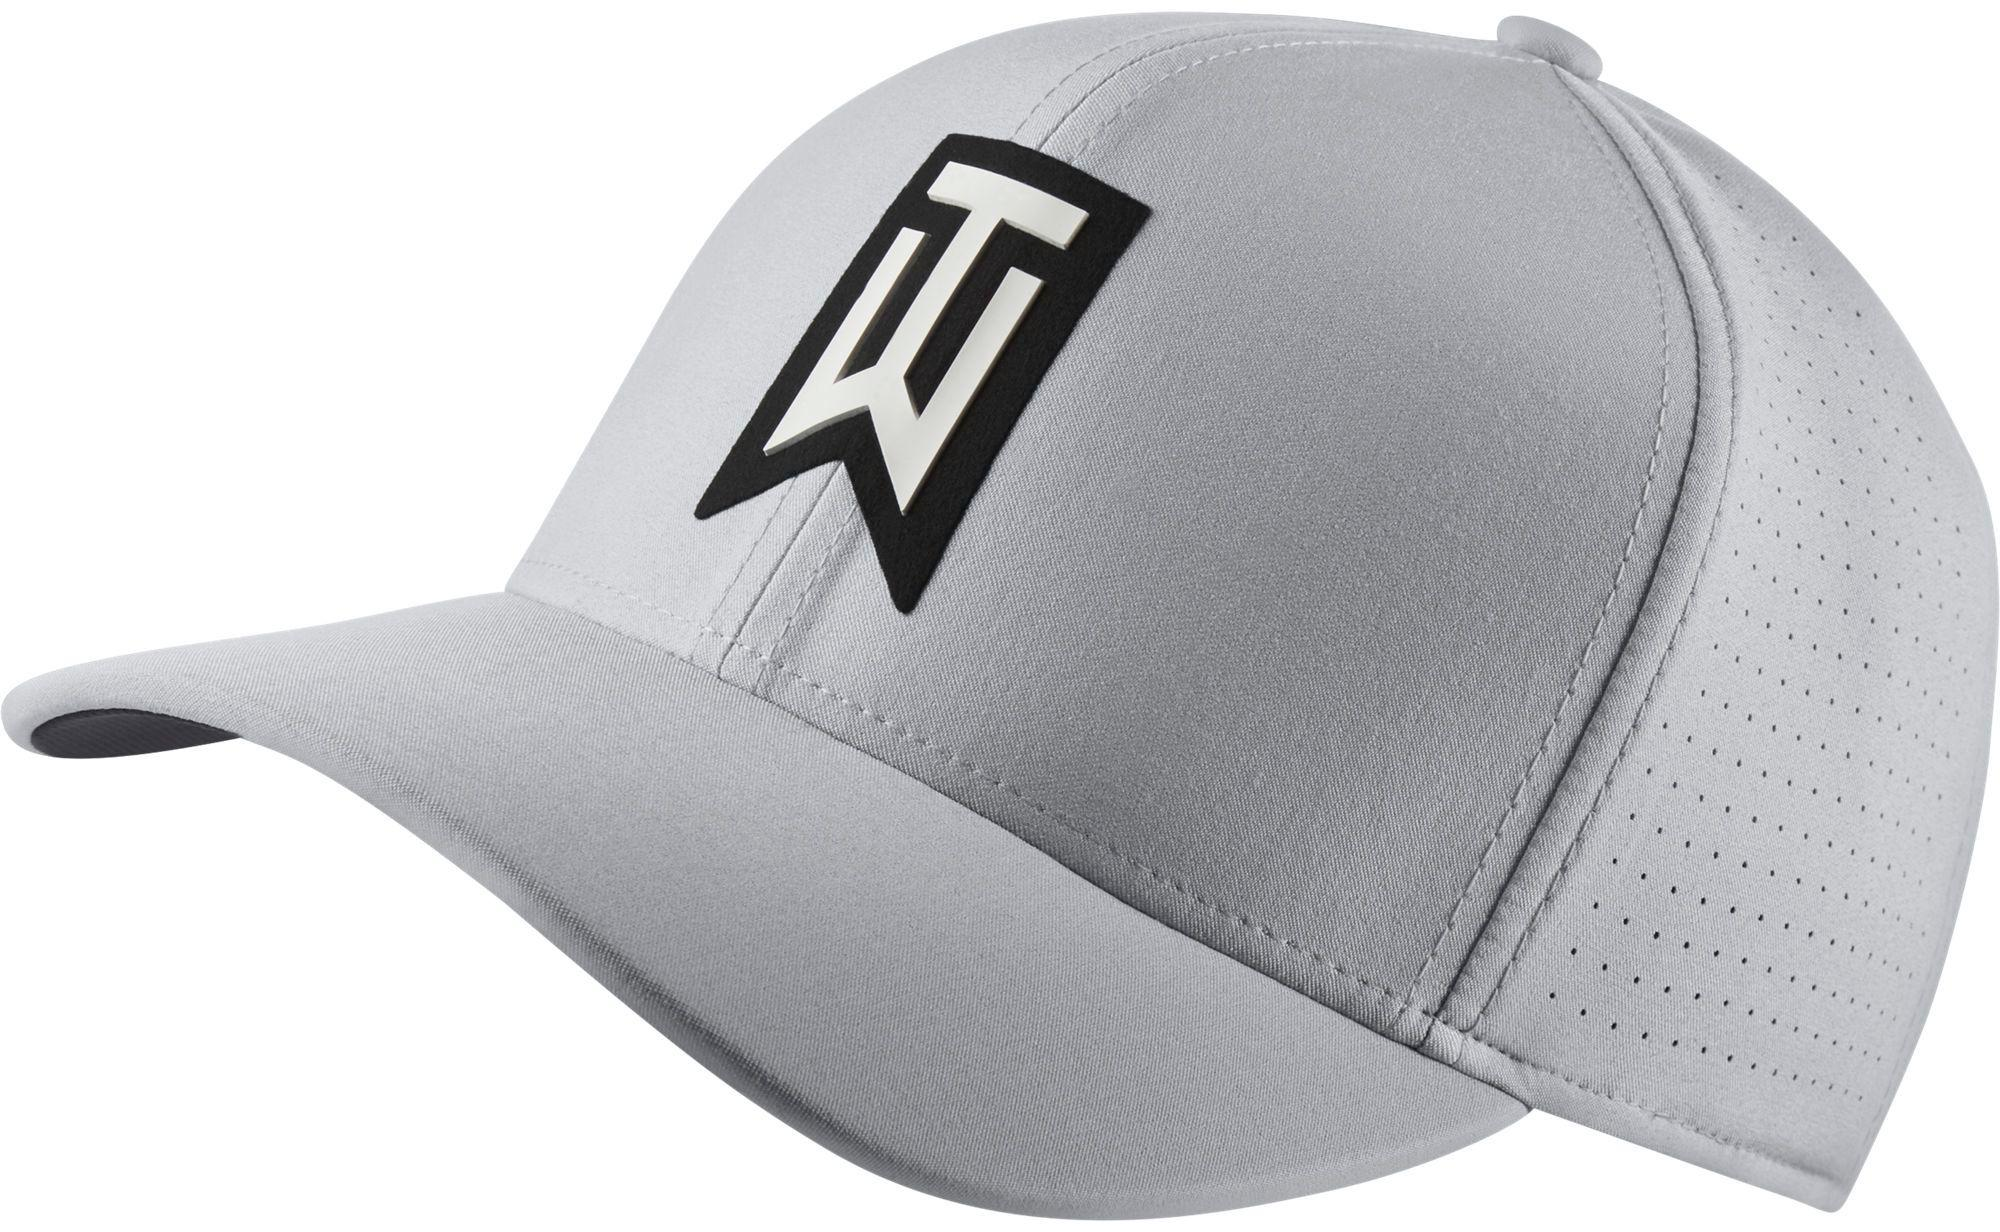 f0cf5a72c5284 Lyst - Nike Aerobill Tw Classic99 Golf Hat in Gray for Men